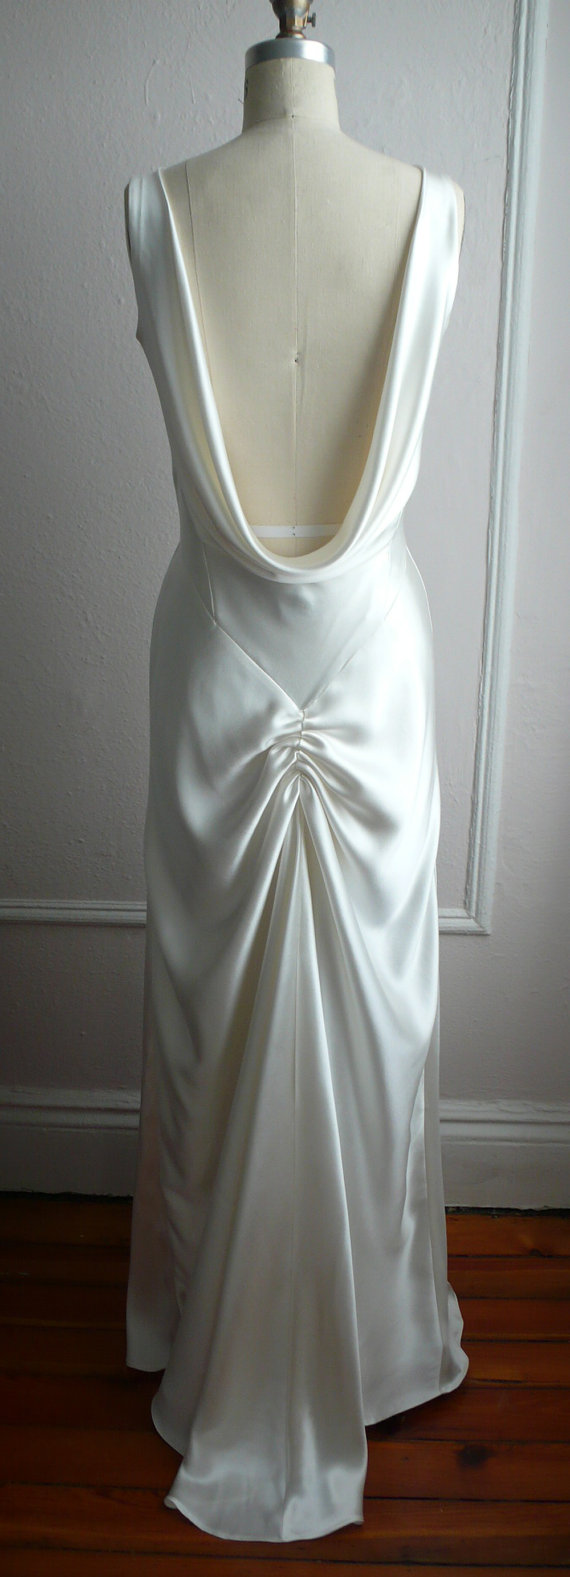 Us inspired bias bridal gown